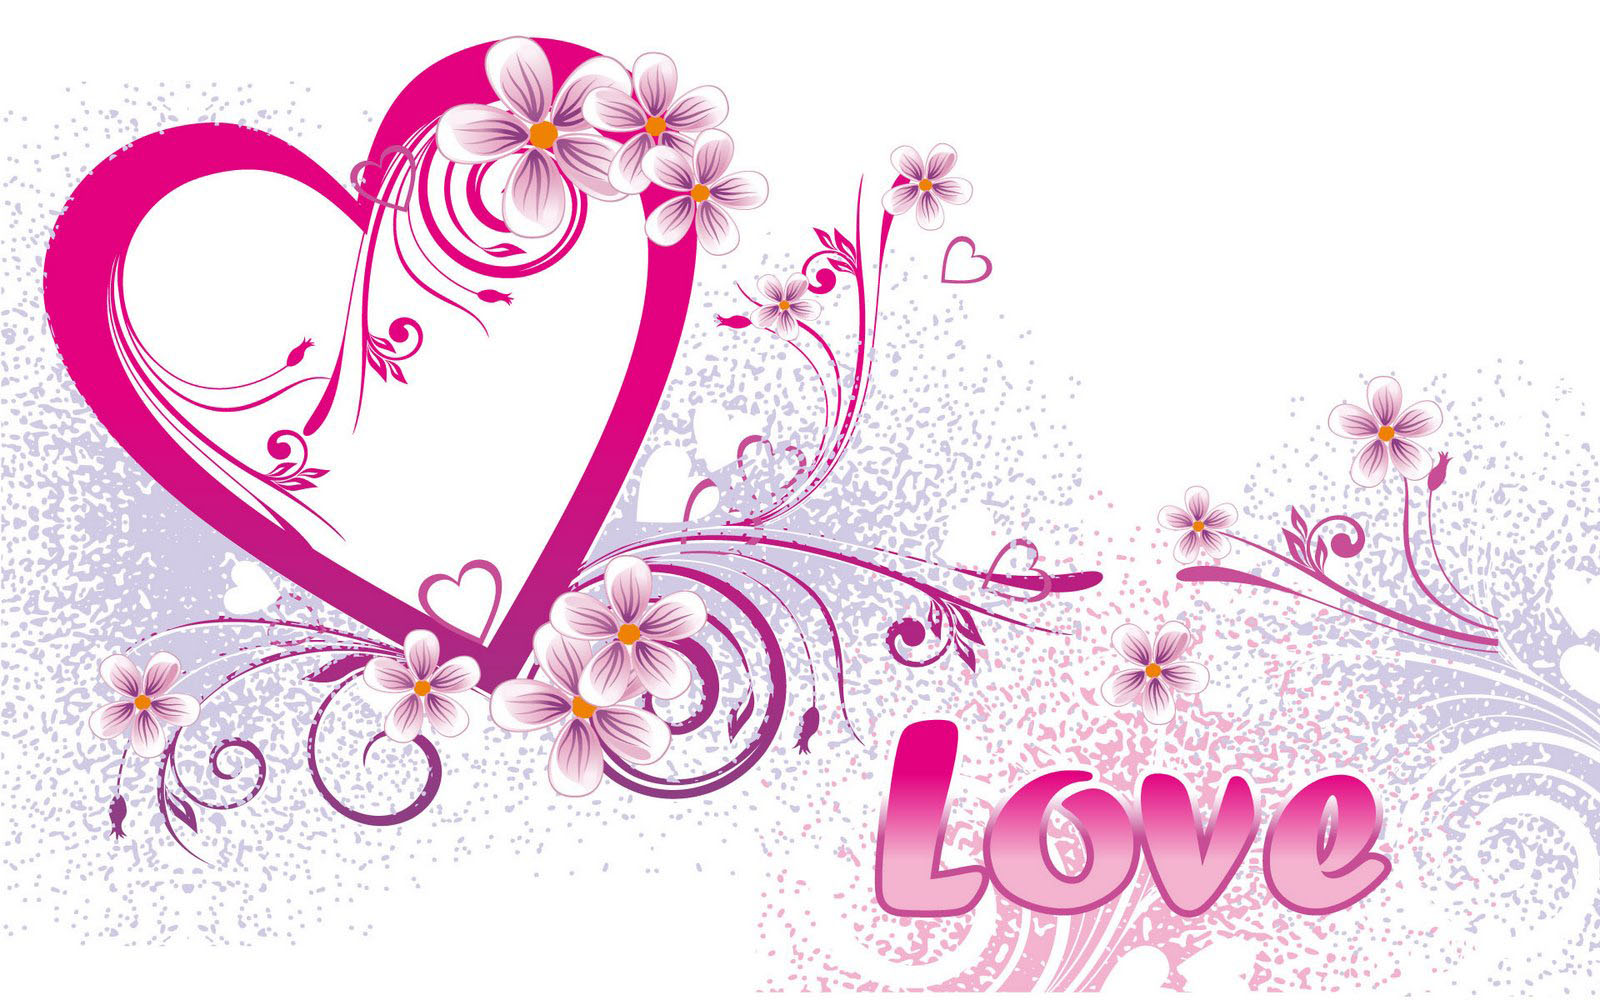 Love Wallpapers Blogspot : wallpapers: New Love Wallpapers